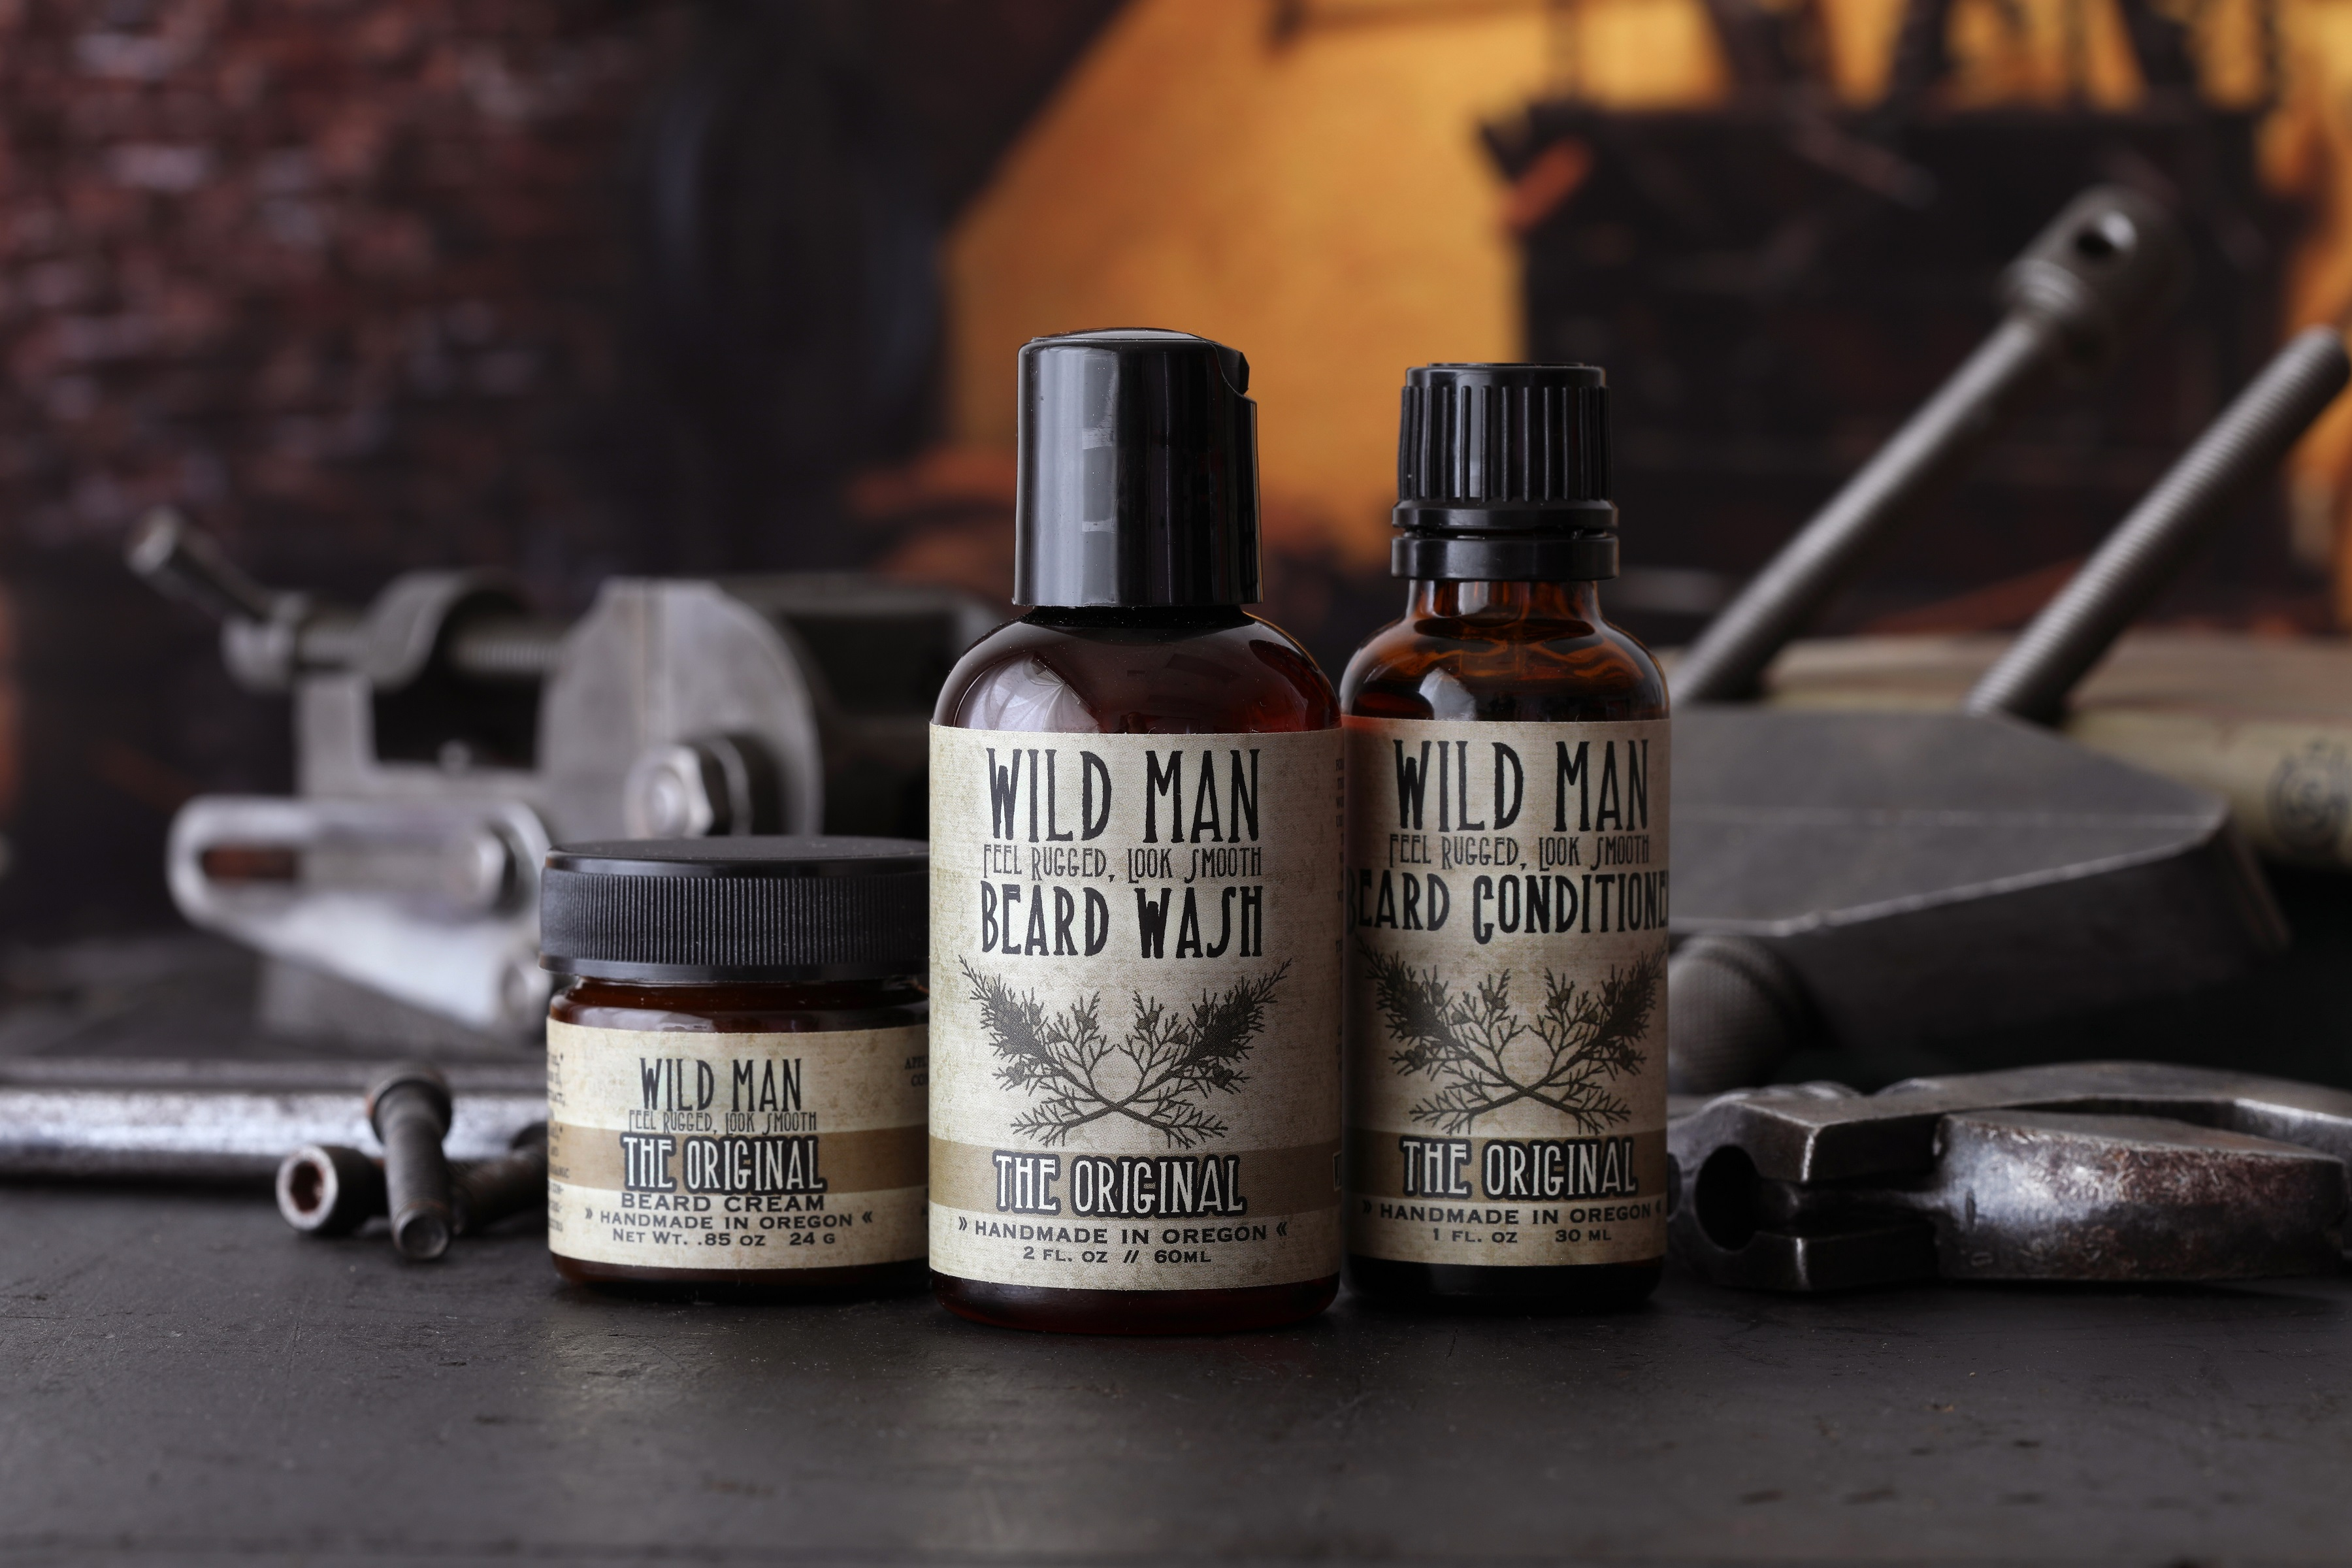 3 beard care products with dark workshop background surrounded by tools